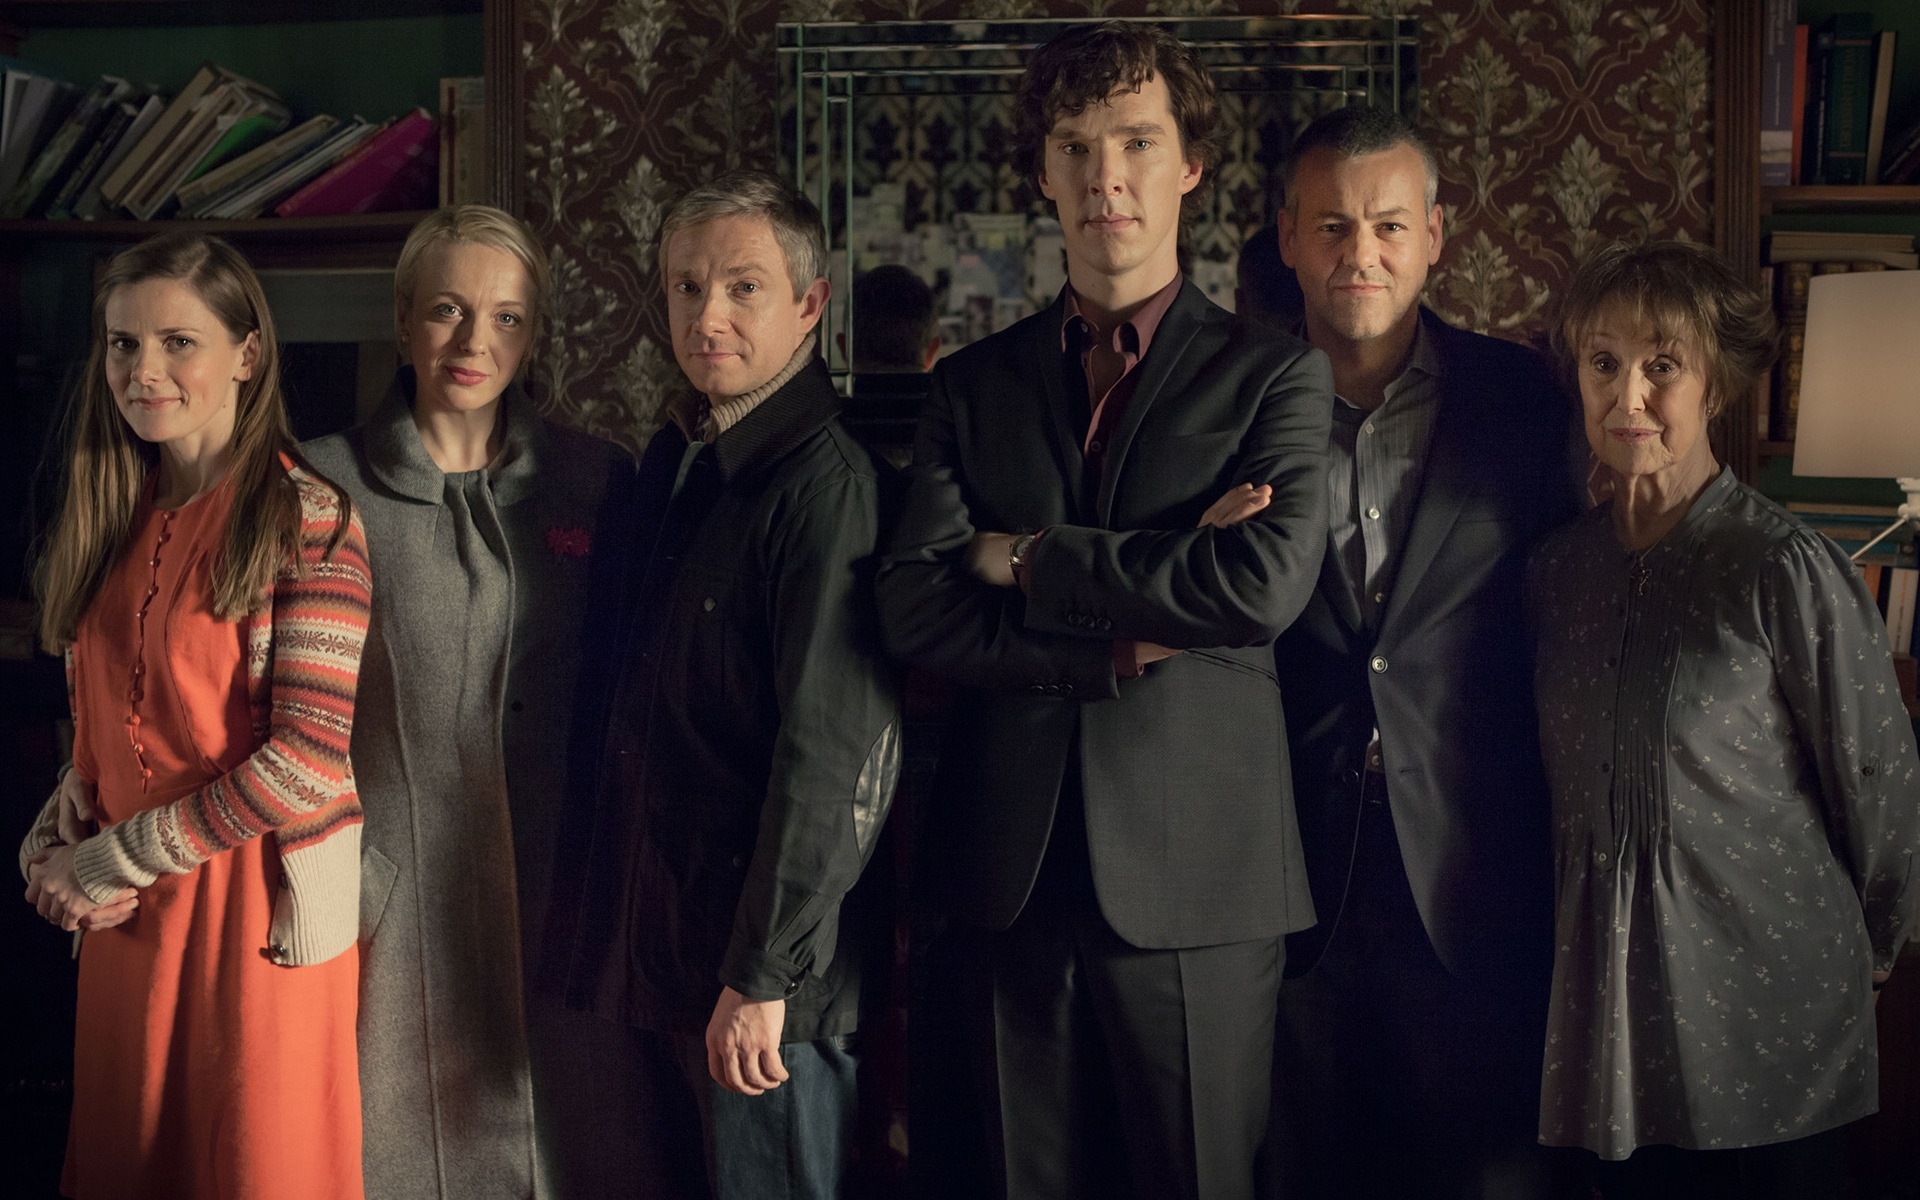 Wallpaper-HD-BBC-Sherlock-Cast